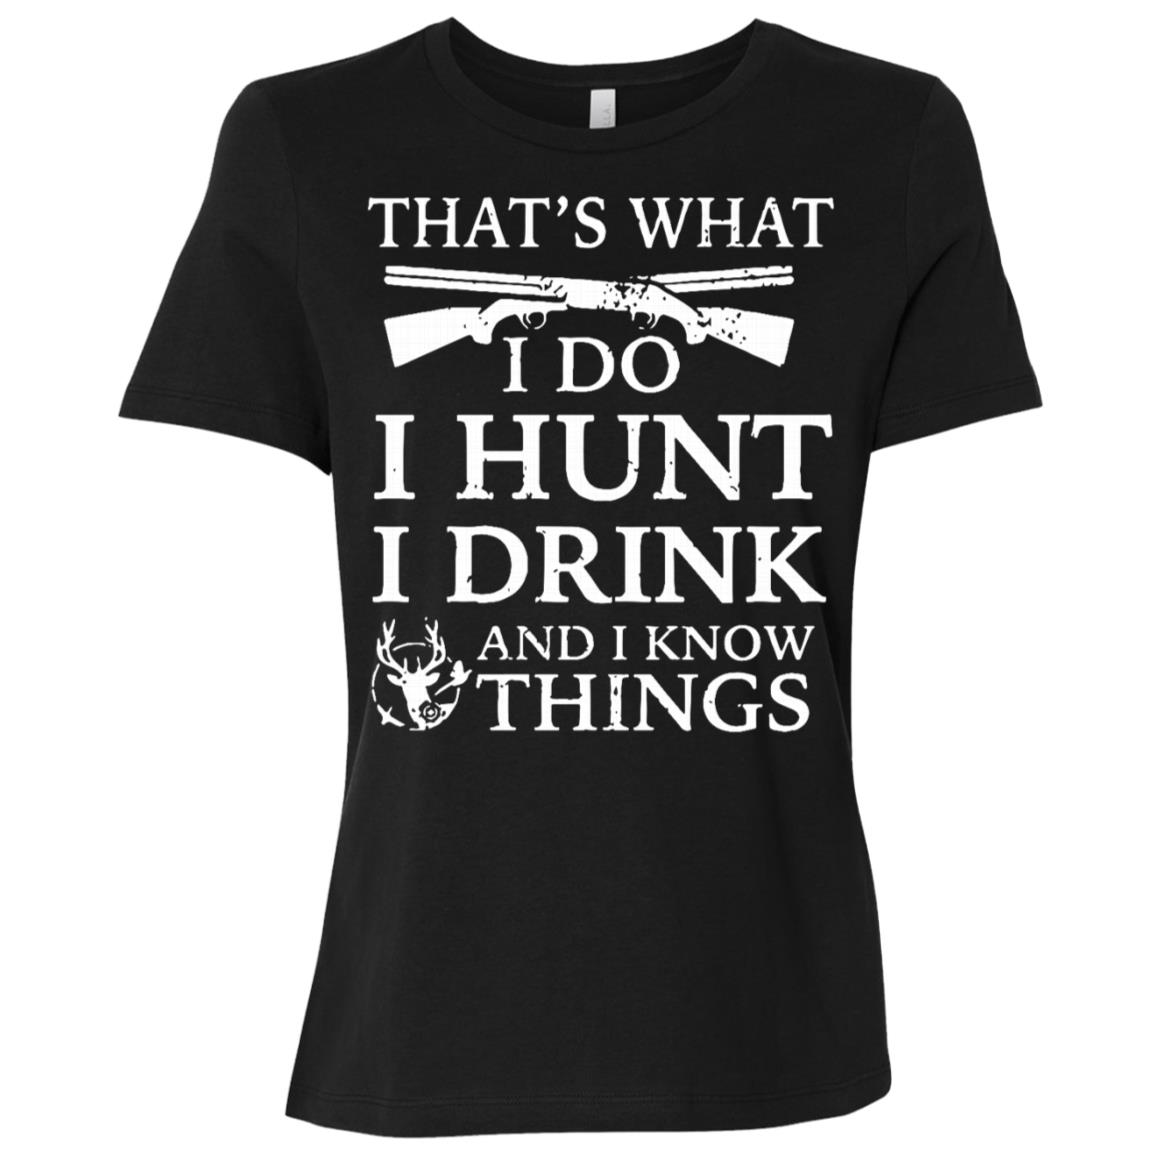 that-what-i-do-i-hunt-i-drink-and-i-know-things Women Short Sleeve T-Shirt